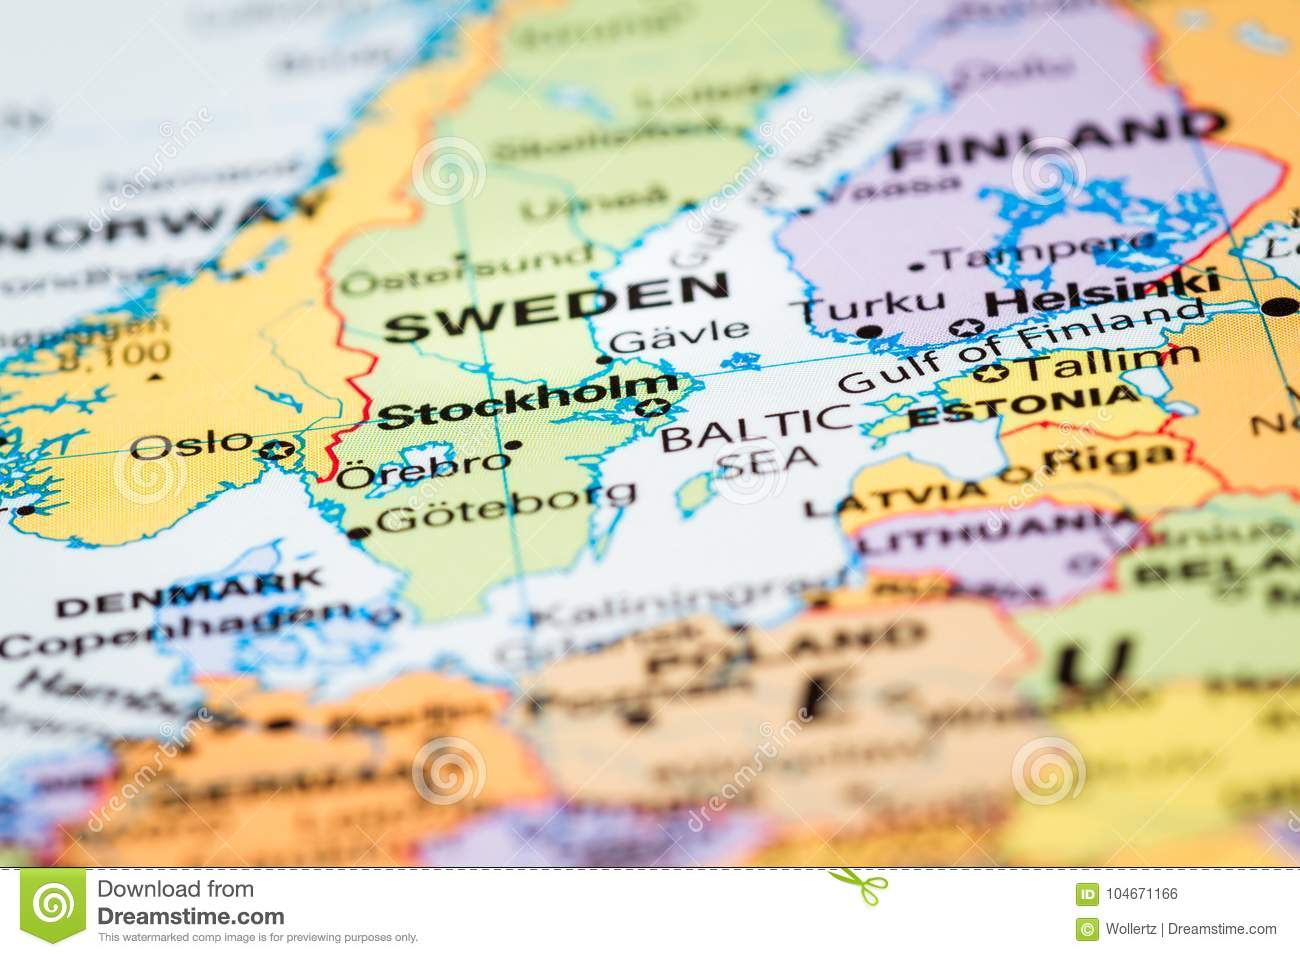 Scandinavia on a map stock photo. Image of macro, countries - 104671166